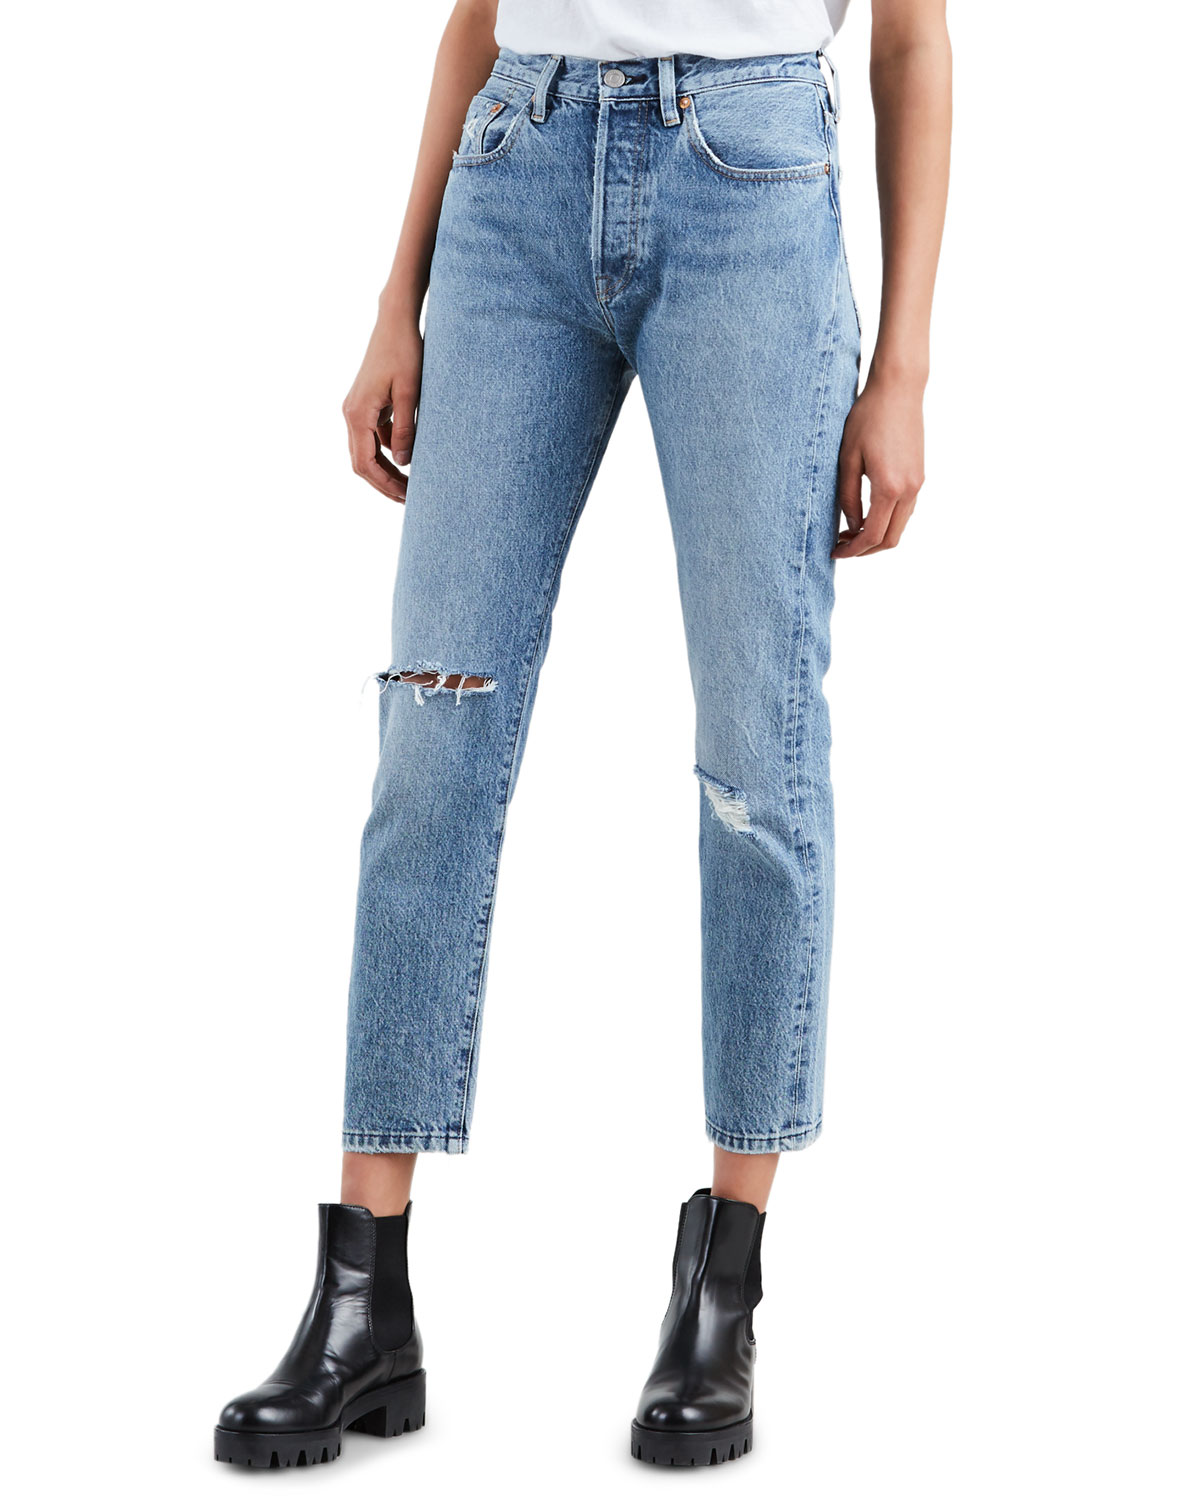 Levi Jeans 501 501 High Rise Cropped Skinny Jeans